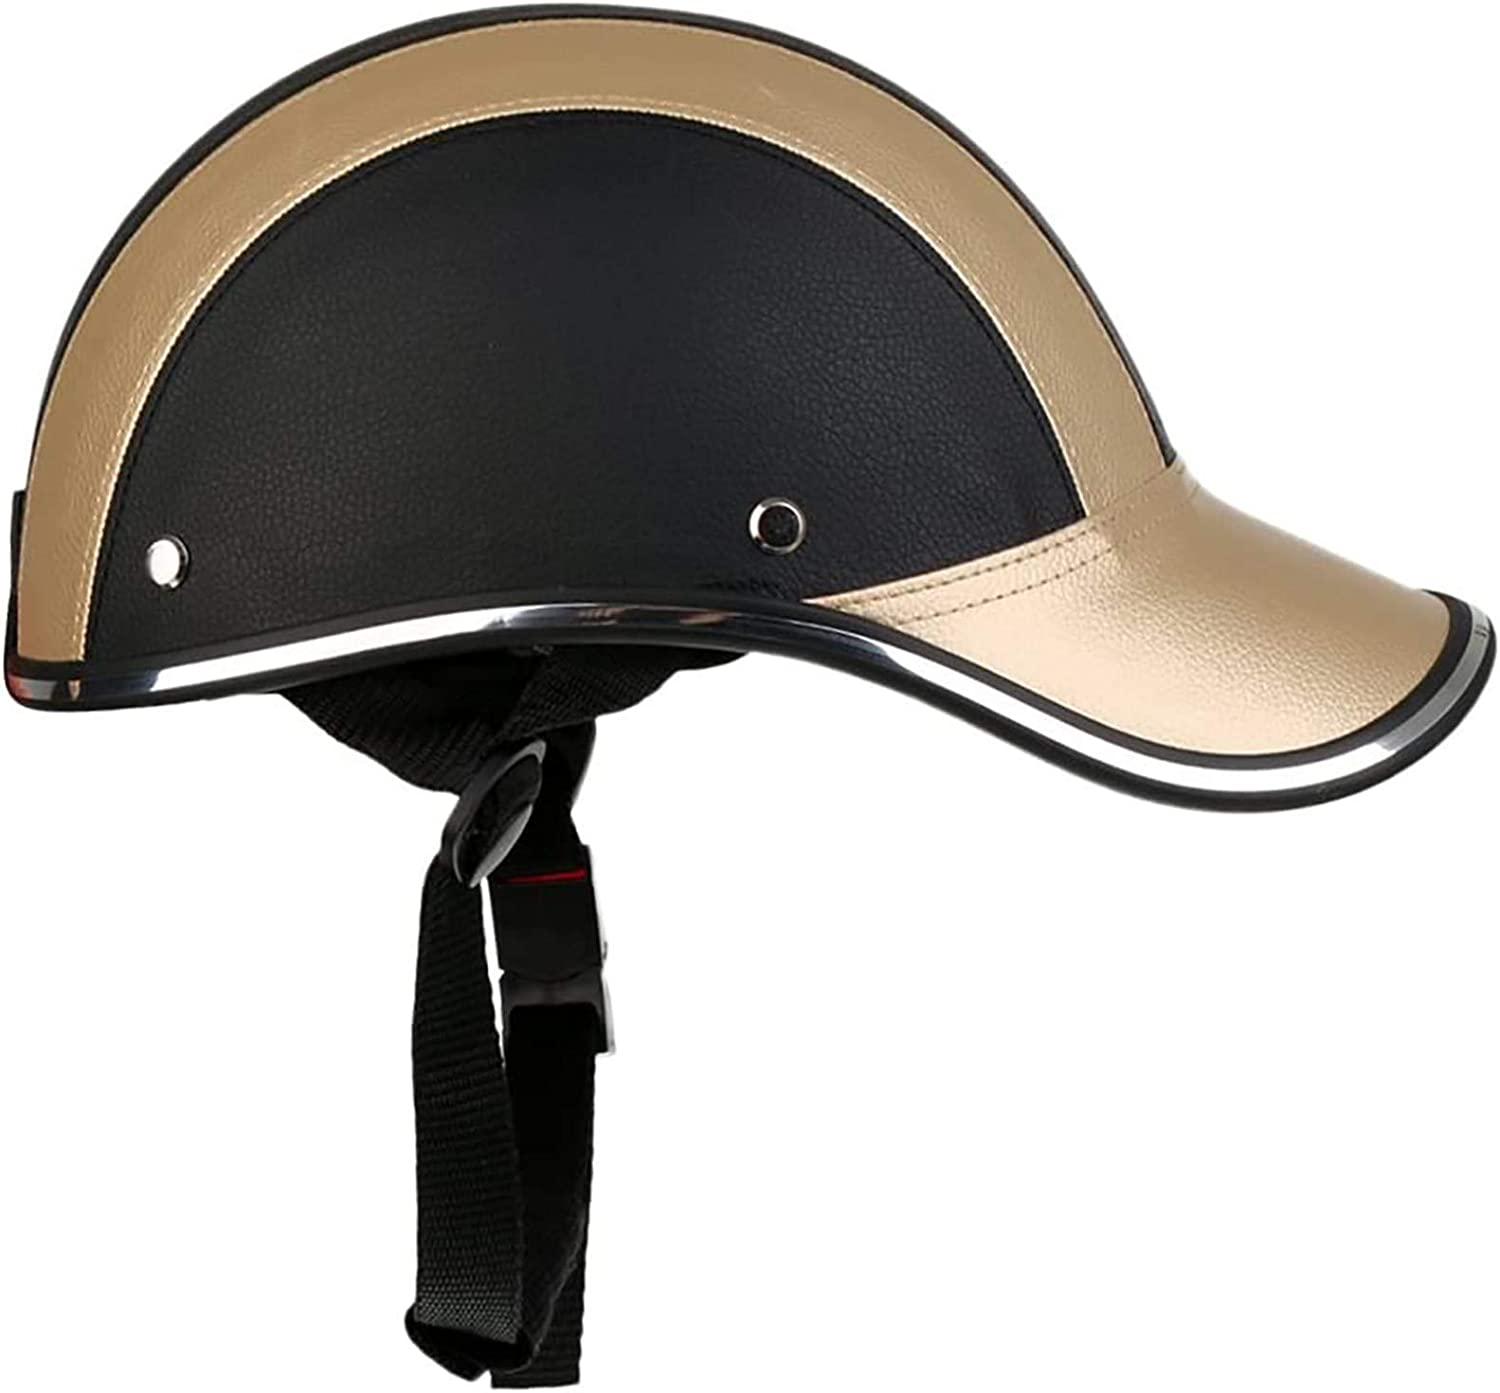 TIANYOU Vintage Leather Motorcycle Product Helmet M Face for Open Safety and trust